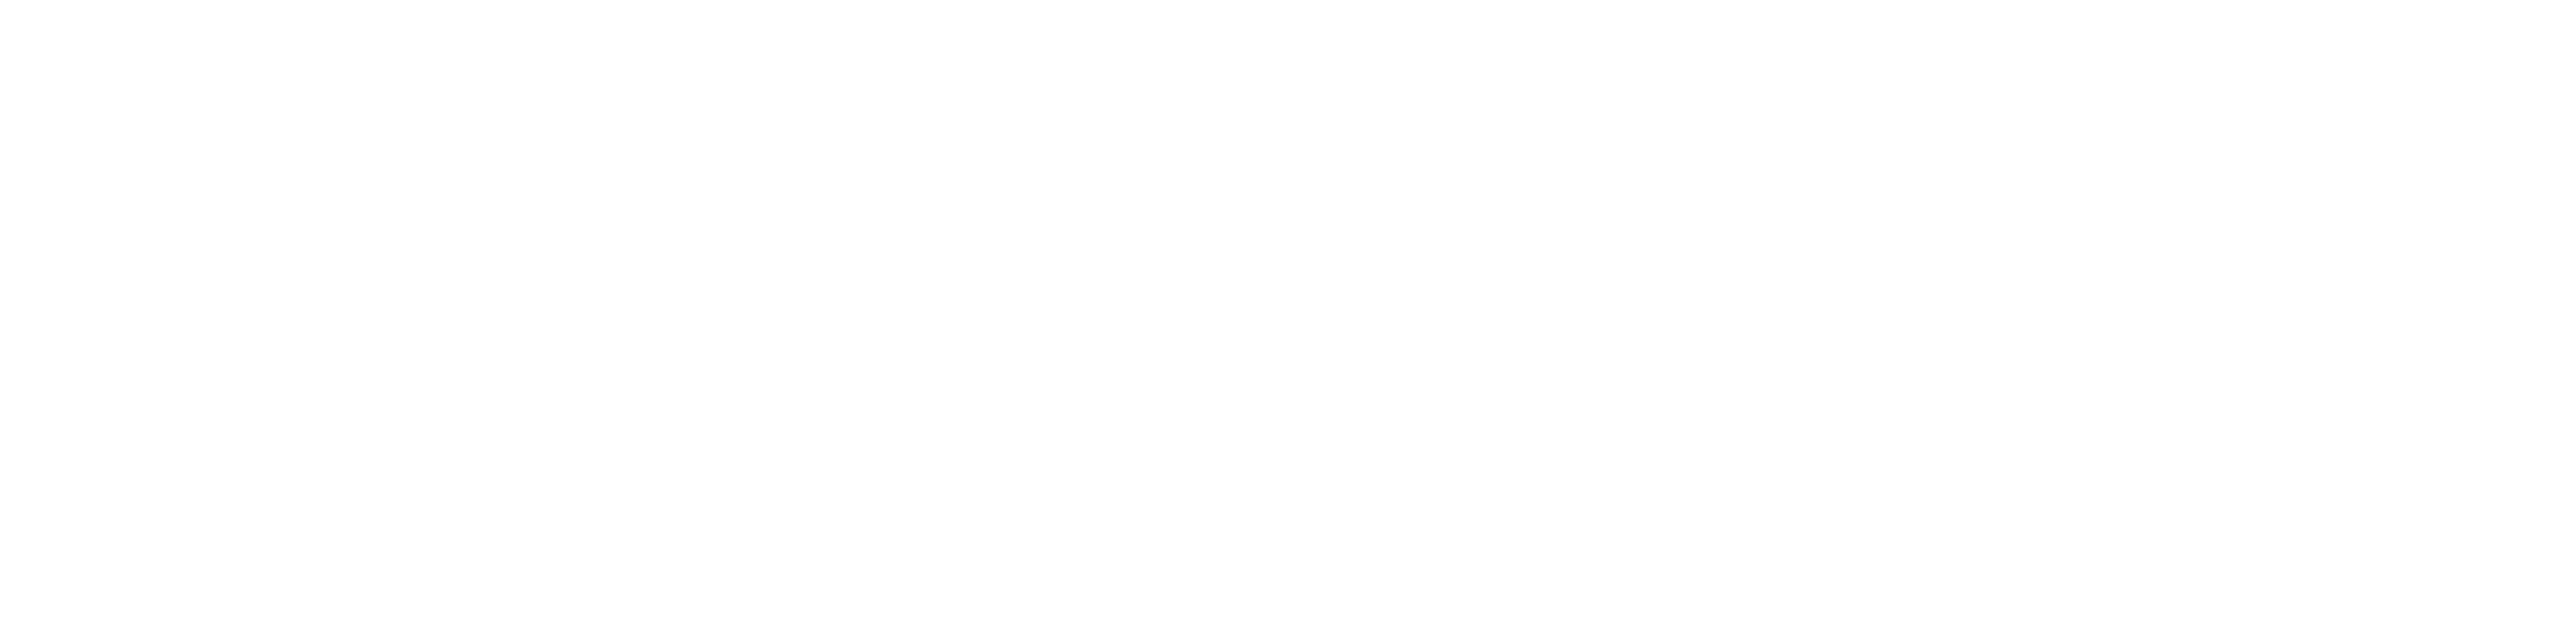 AWS Summit Switzerland